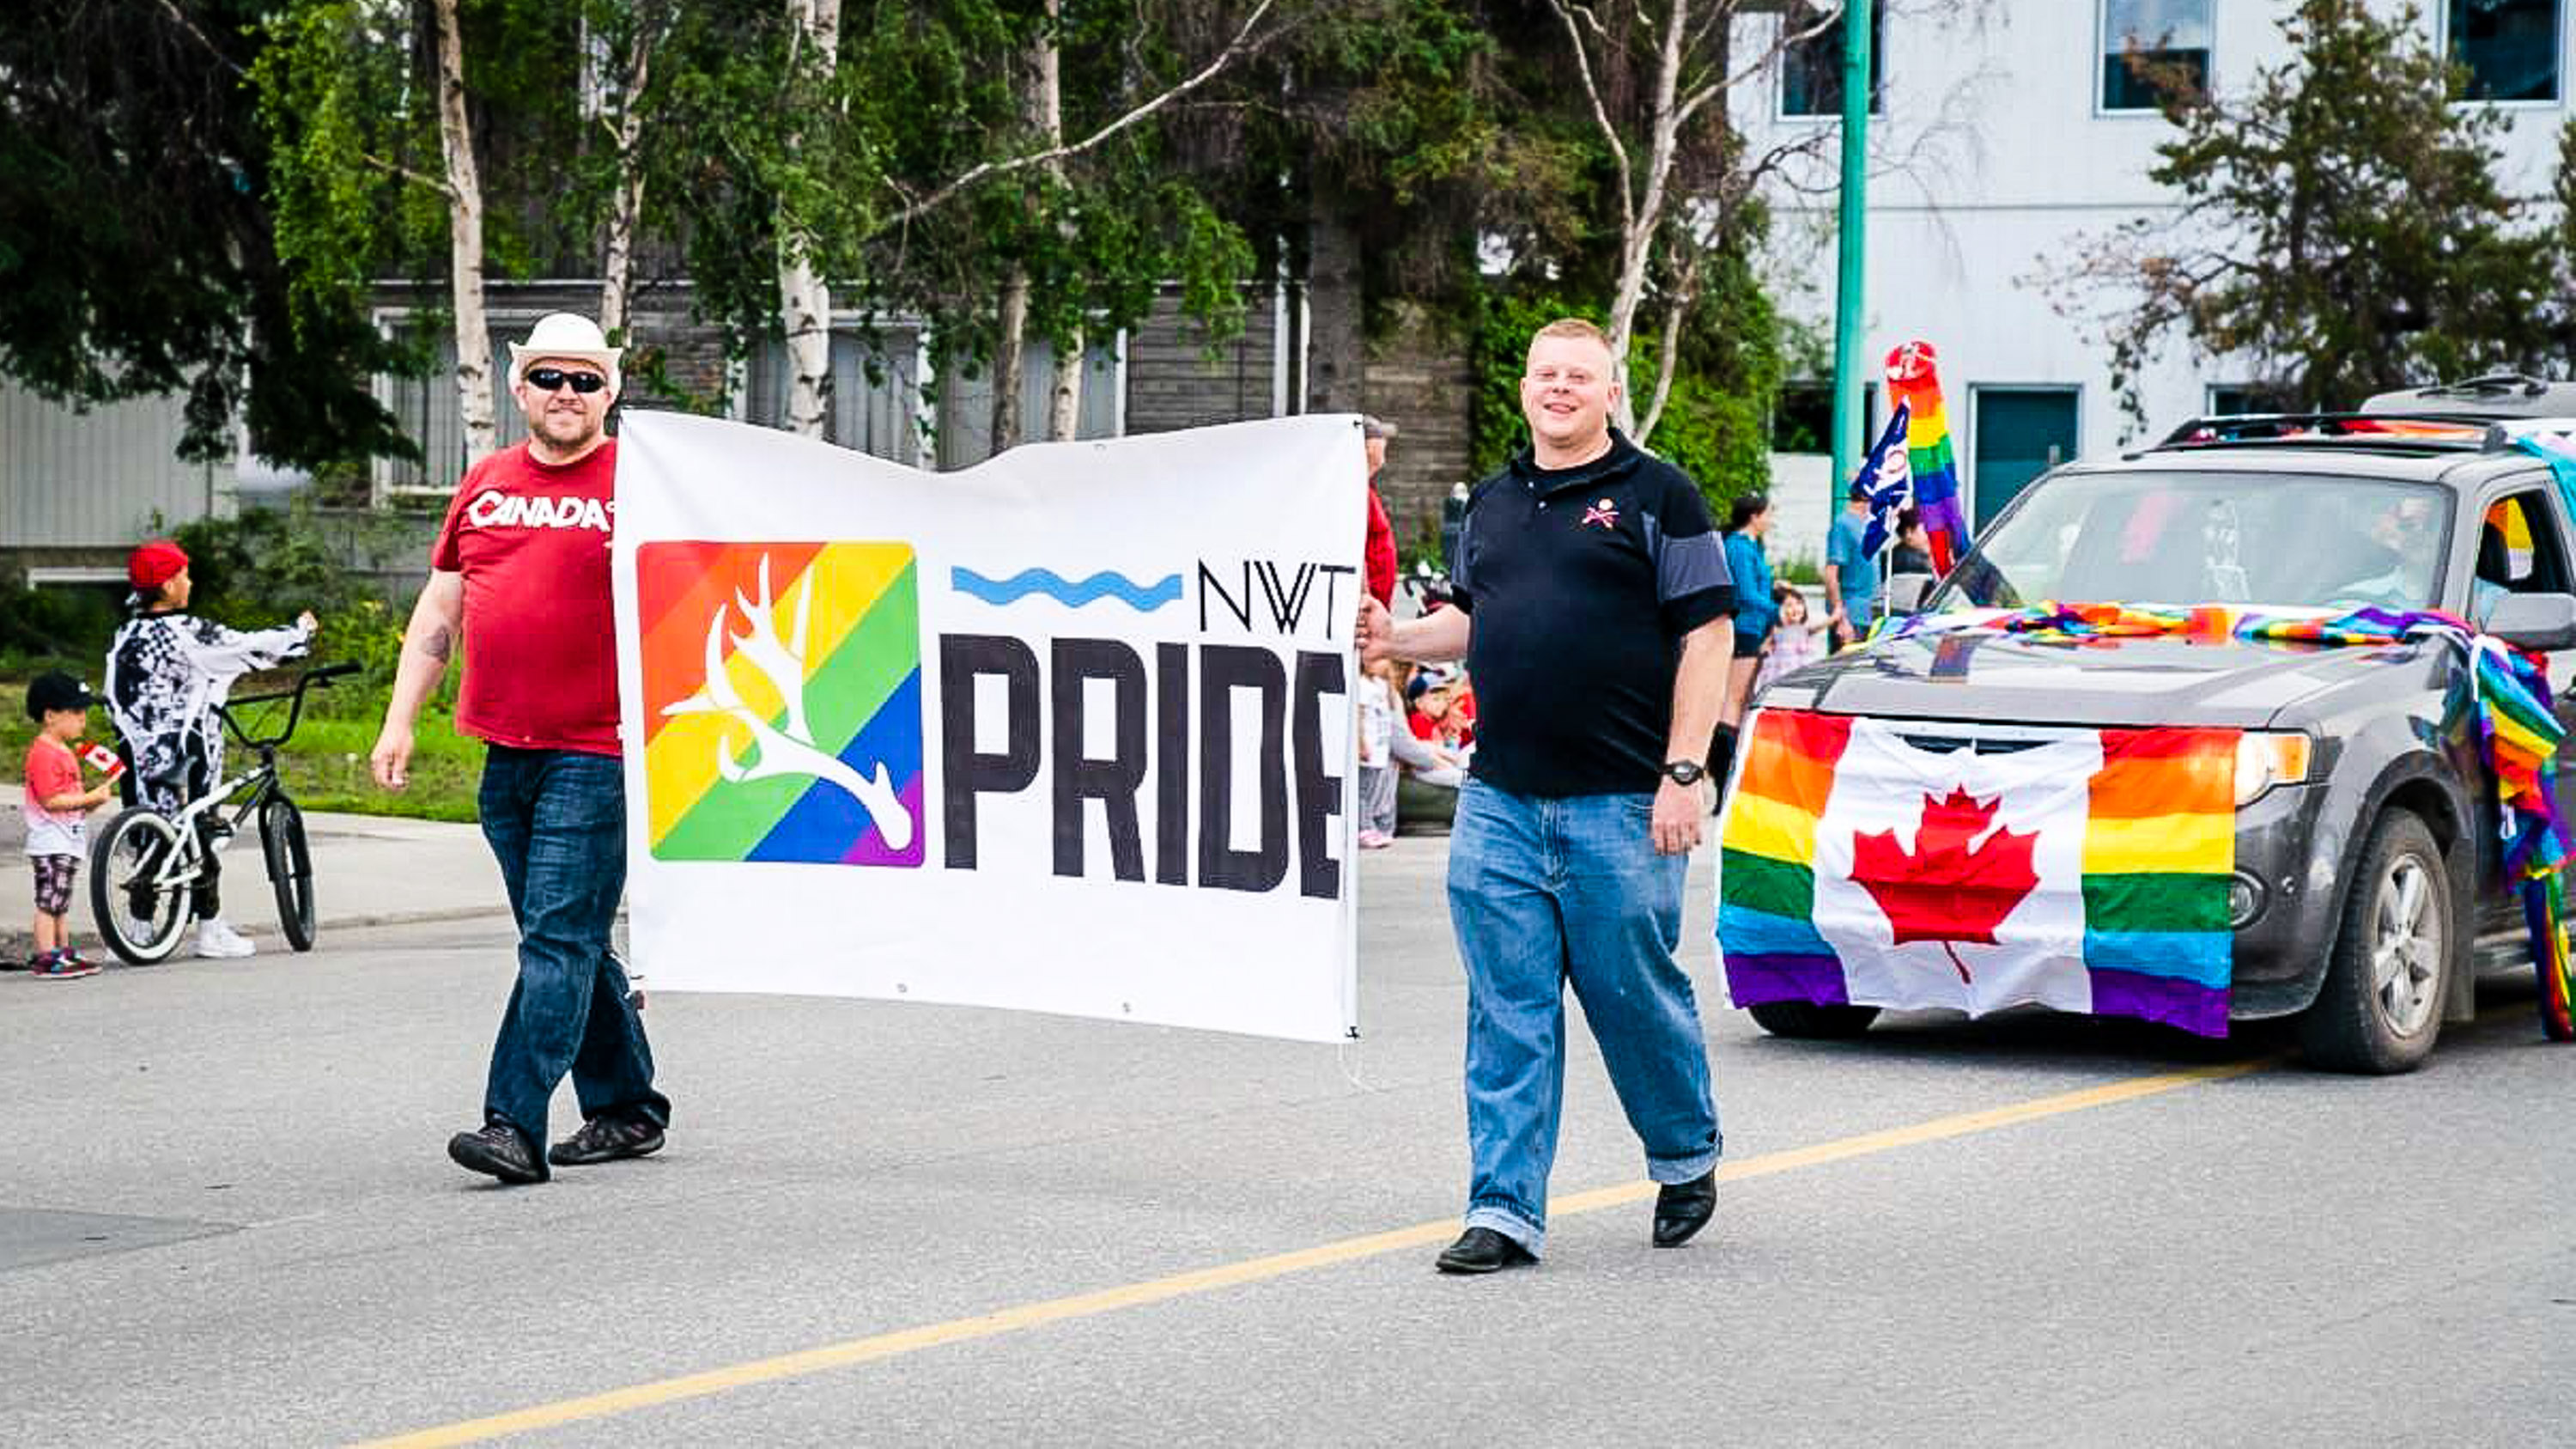 A photo posted online by NWT Pride shows its banner being carried by supporters during a parade in 2018